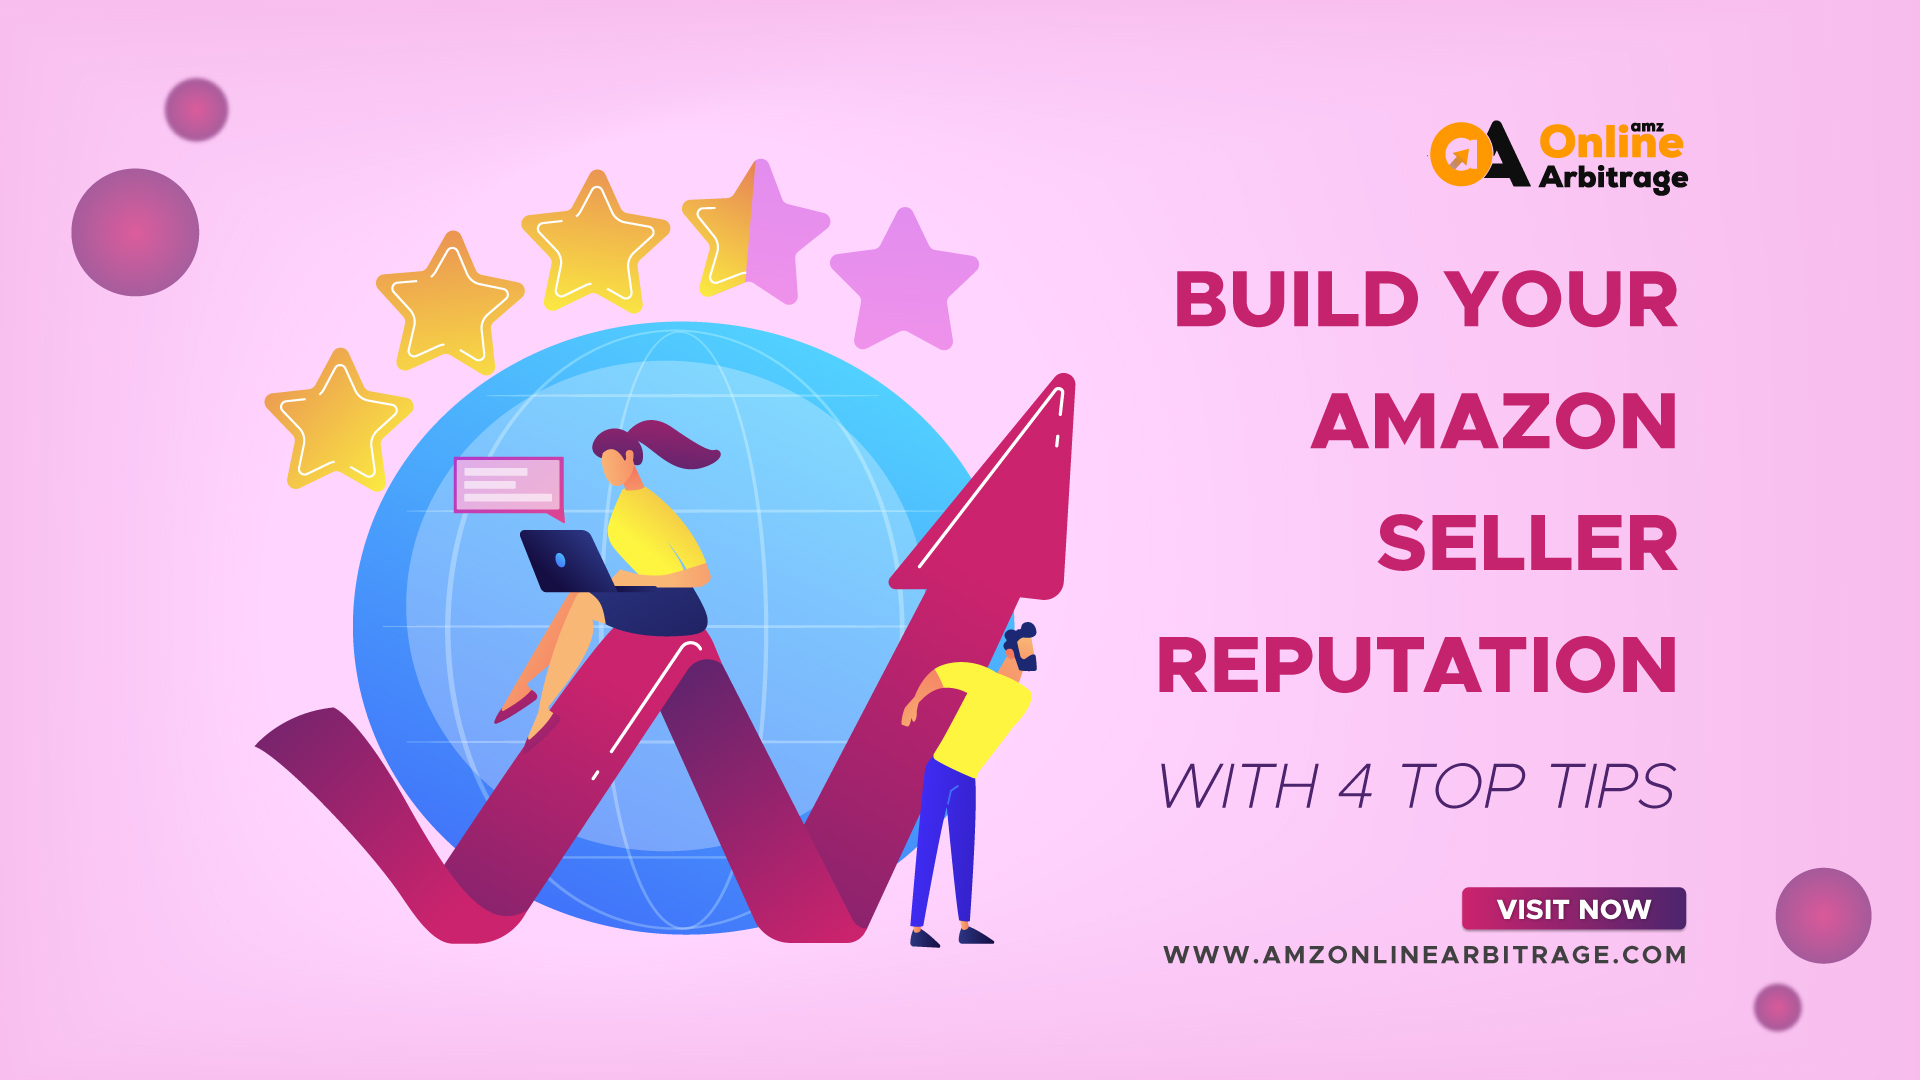 BUILD YOUR AMAZON SELLER REPUTATION WITH 4 TOP TIPS